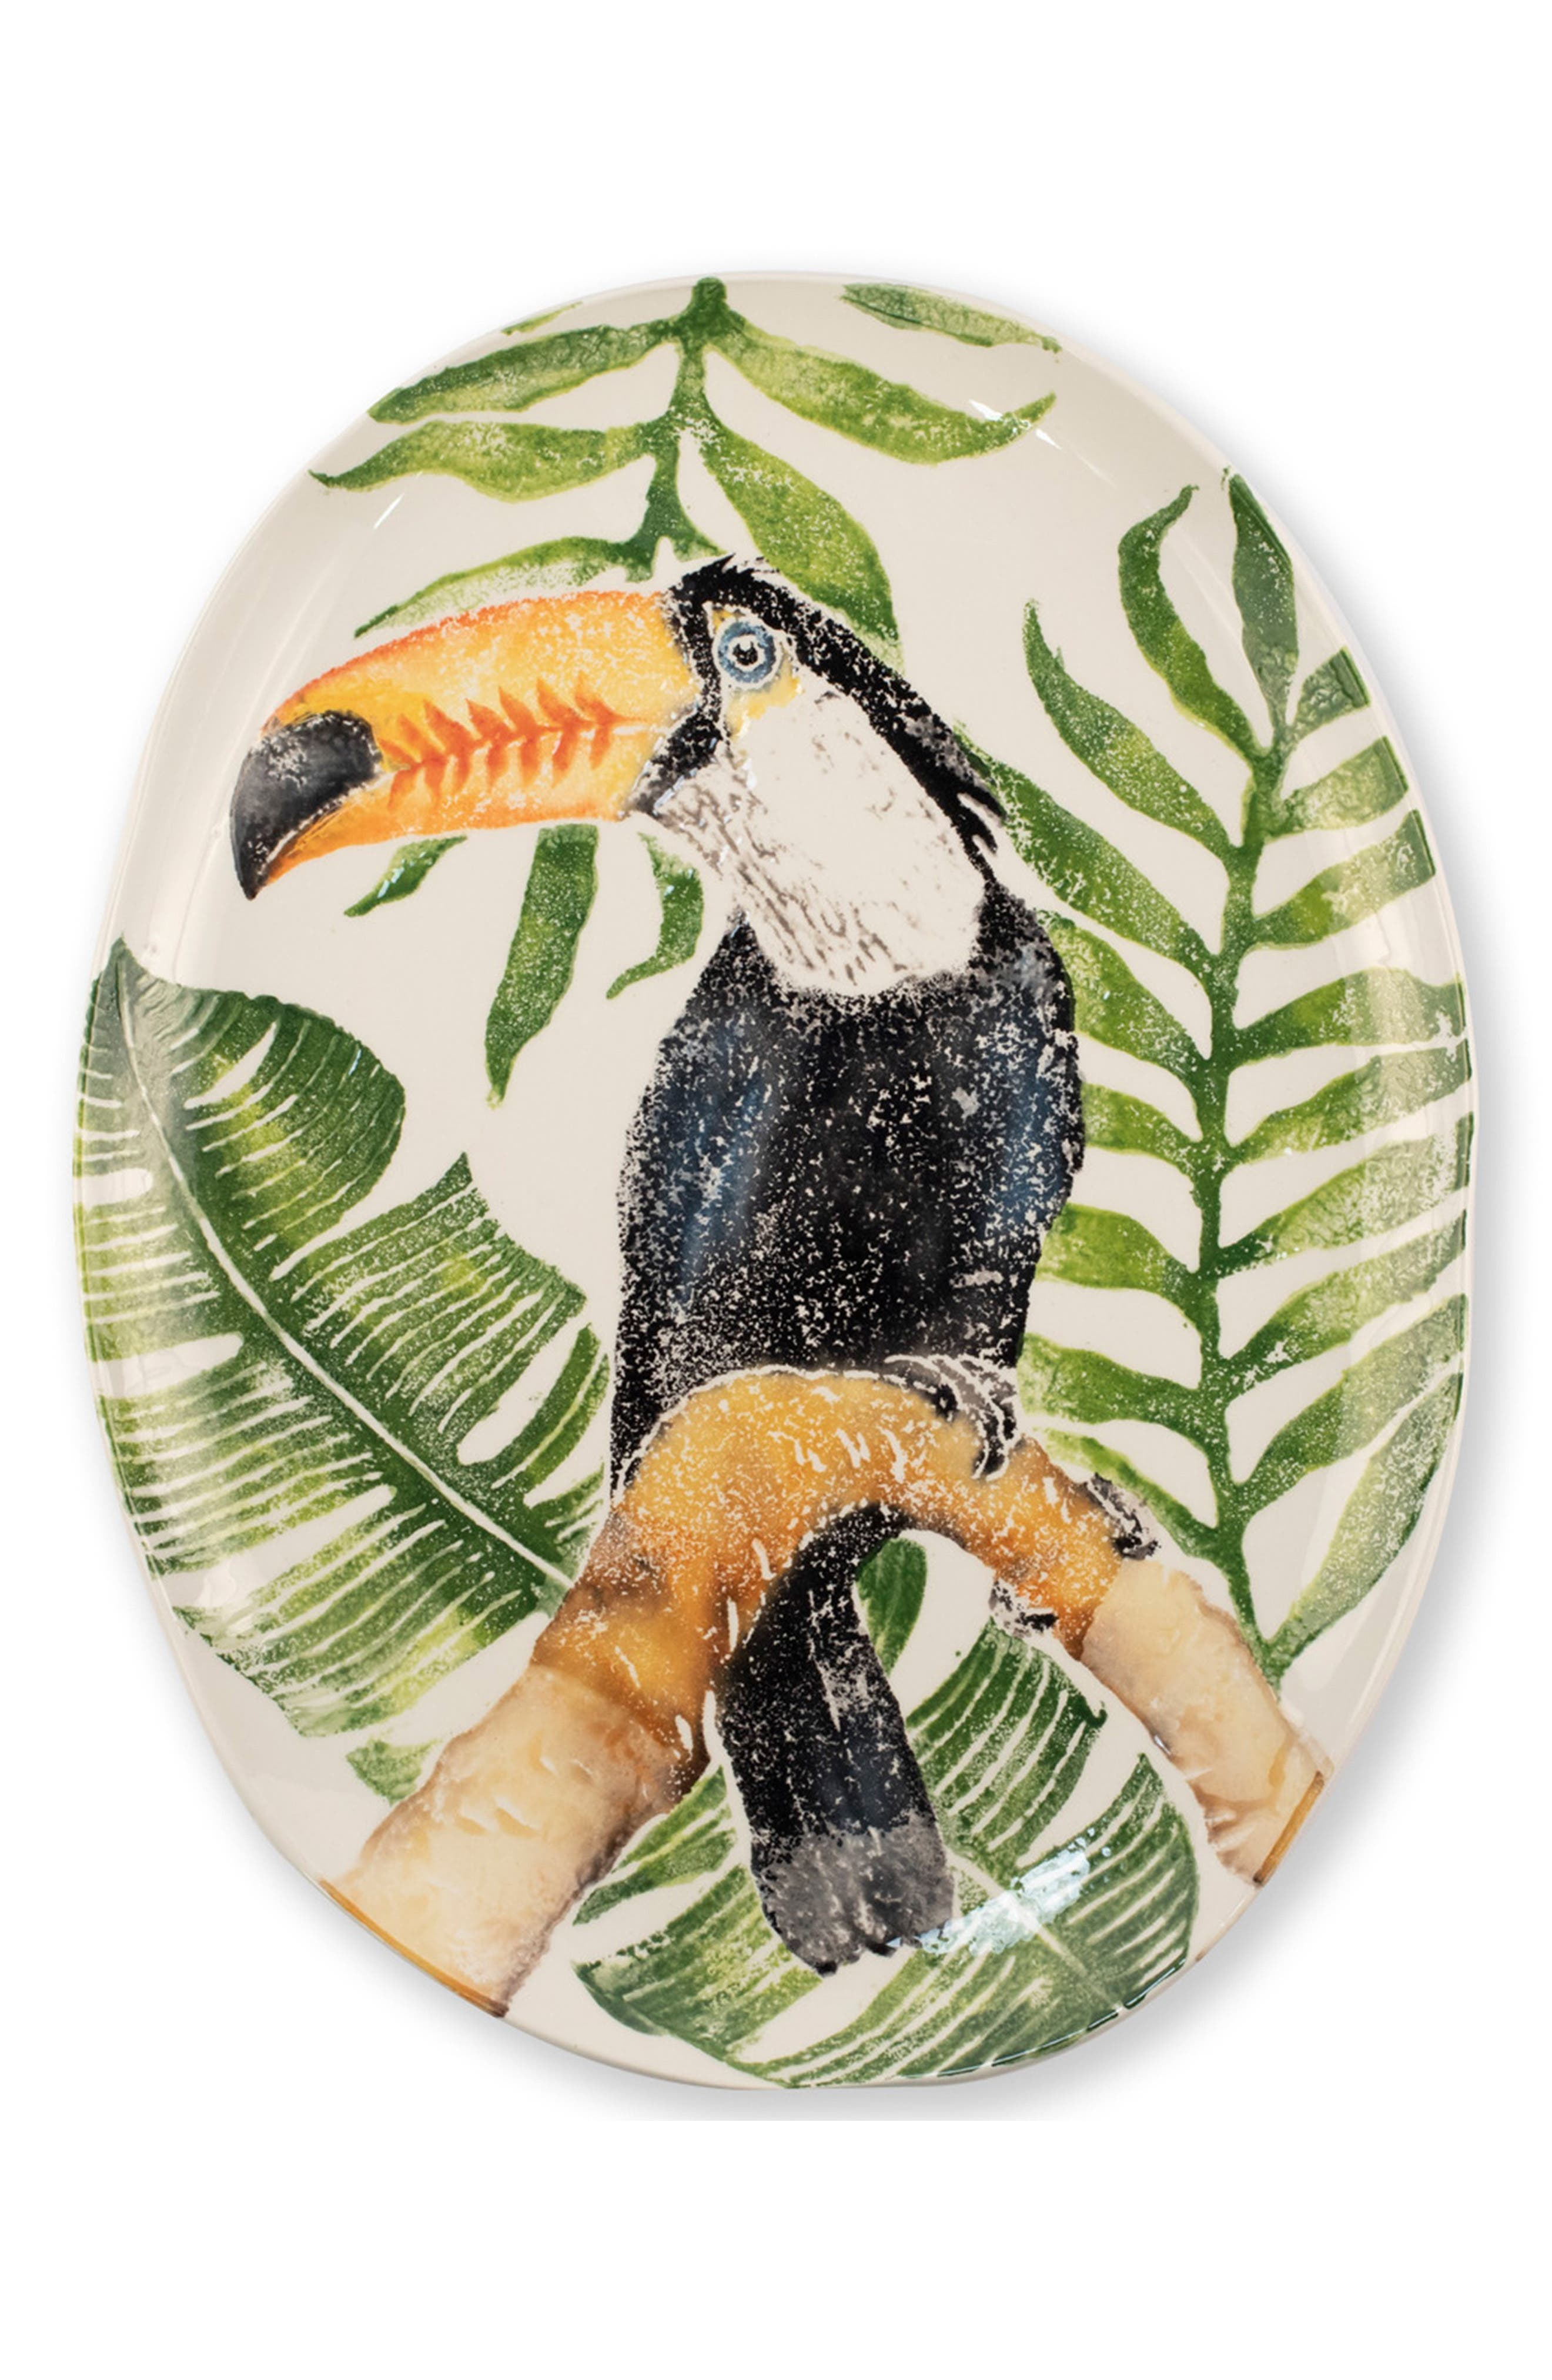 One of the tropic\\\'s most intriguing creatures makes a dramatic appearance at your table with this oval tray hand painted in Italy. Style Name: Vietri Into The Jungle Toucan Tray. Style Number: 5826406. Available in stores.